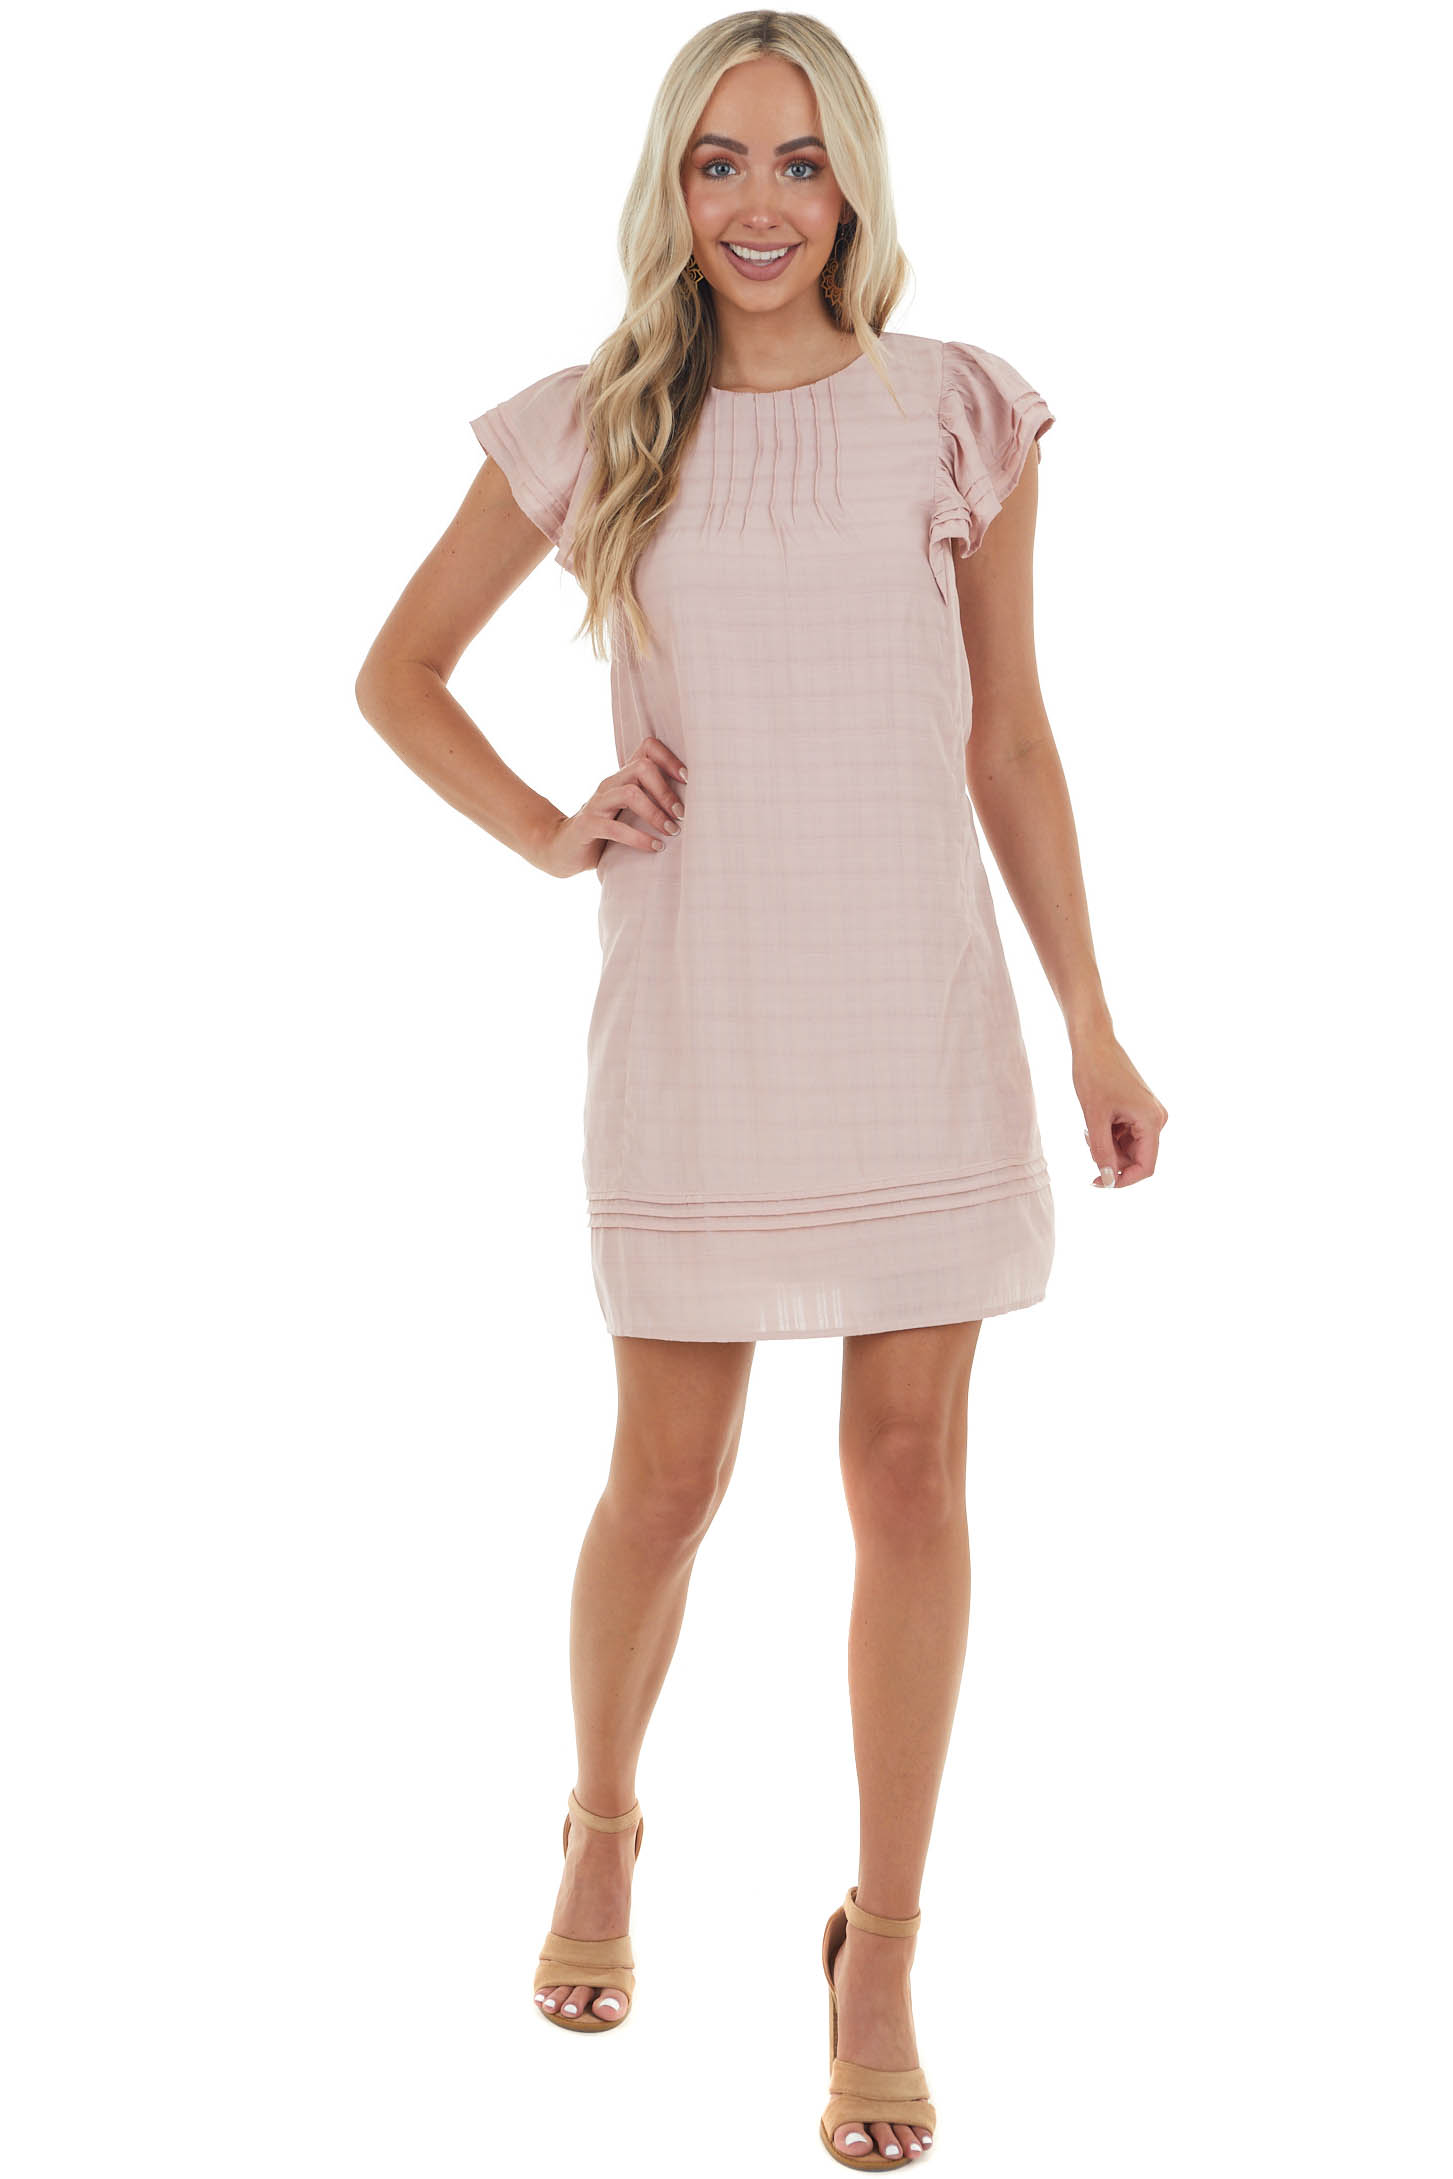 Dusty Blush A-Line Dress with Frill Detailing